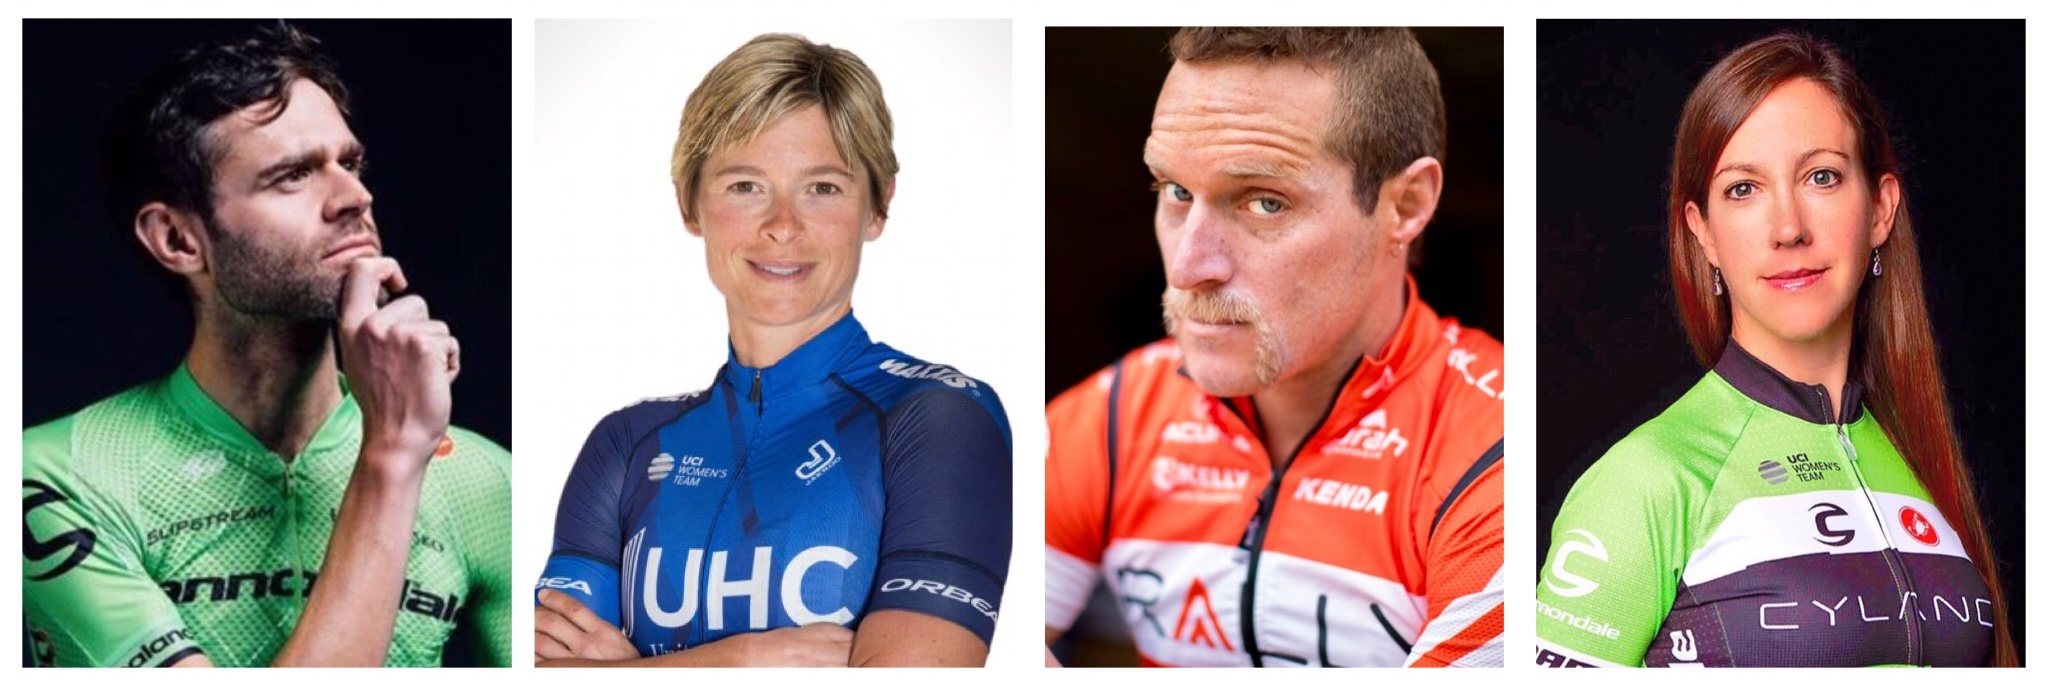 """Join us for a fantastic evening of dinner, drinks & amazing conversation with some of pro cycling's greatest characters. """"Evening with the Pros"""" in Tucson, AZ on Thur Nov 15th. Details below!"""